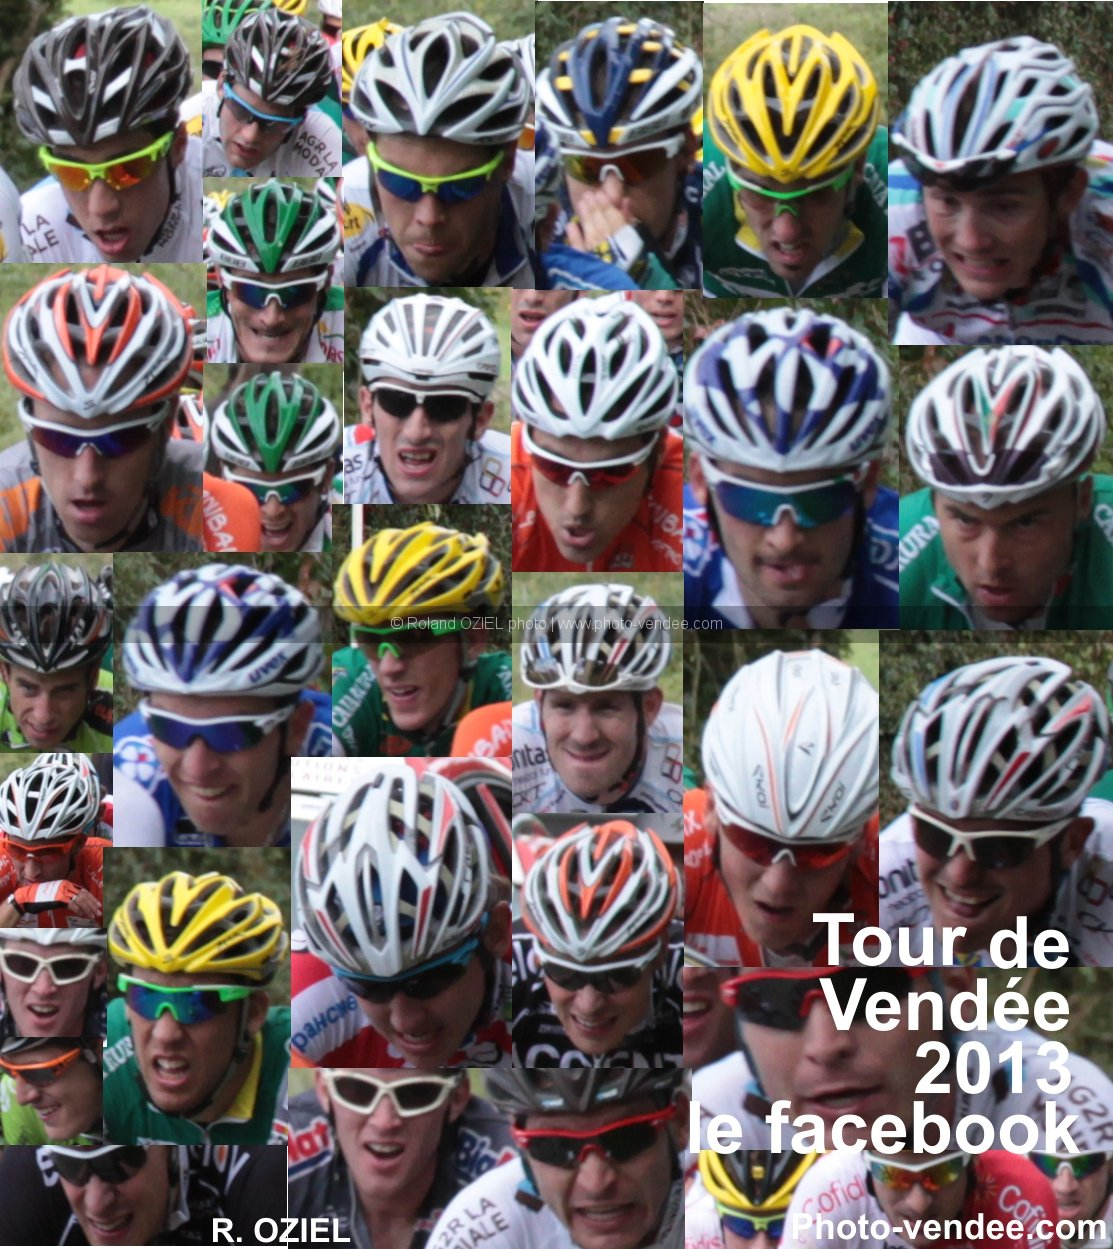 Photo insolite du tour de vendée 2013